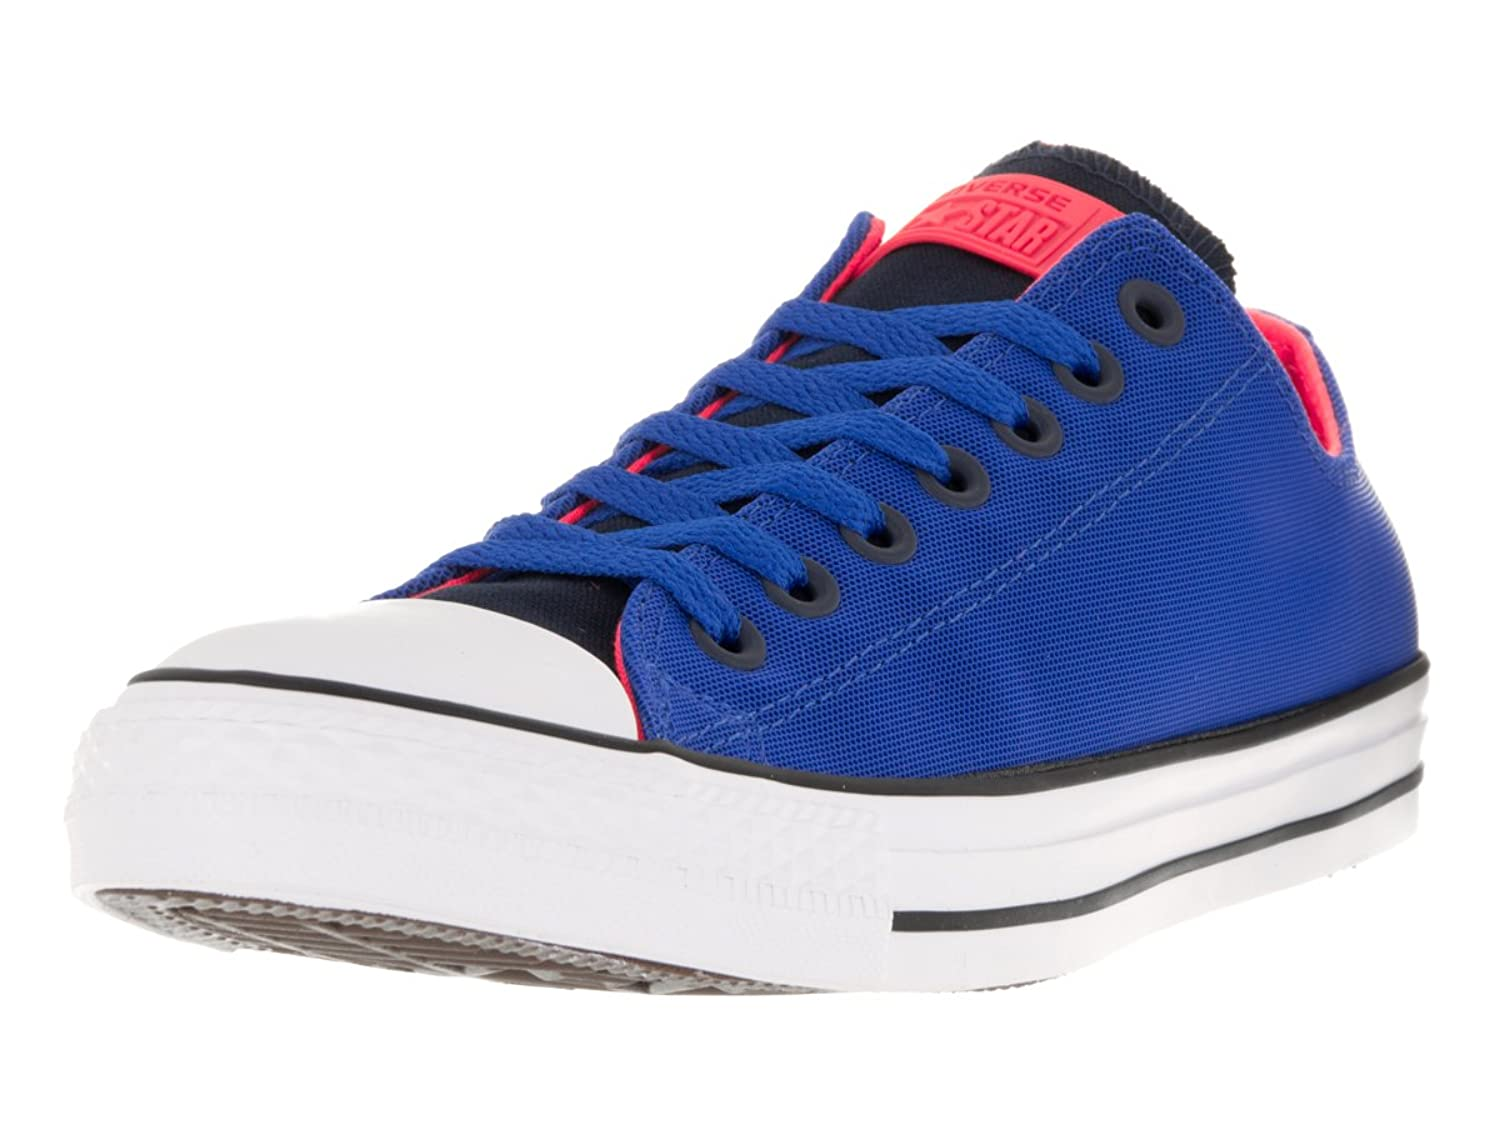 Converse Chuck Taylor All Star Kurium Low Top Sneaker